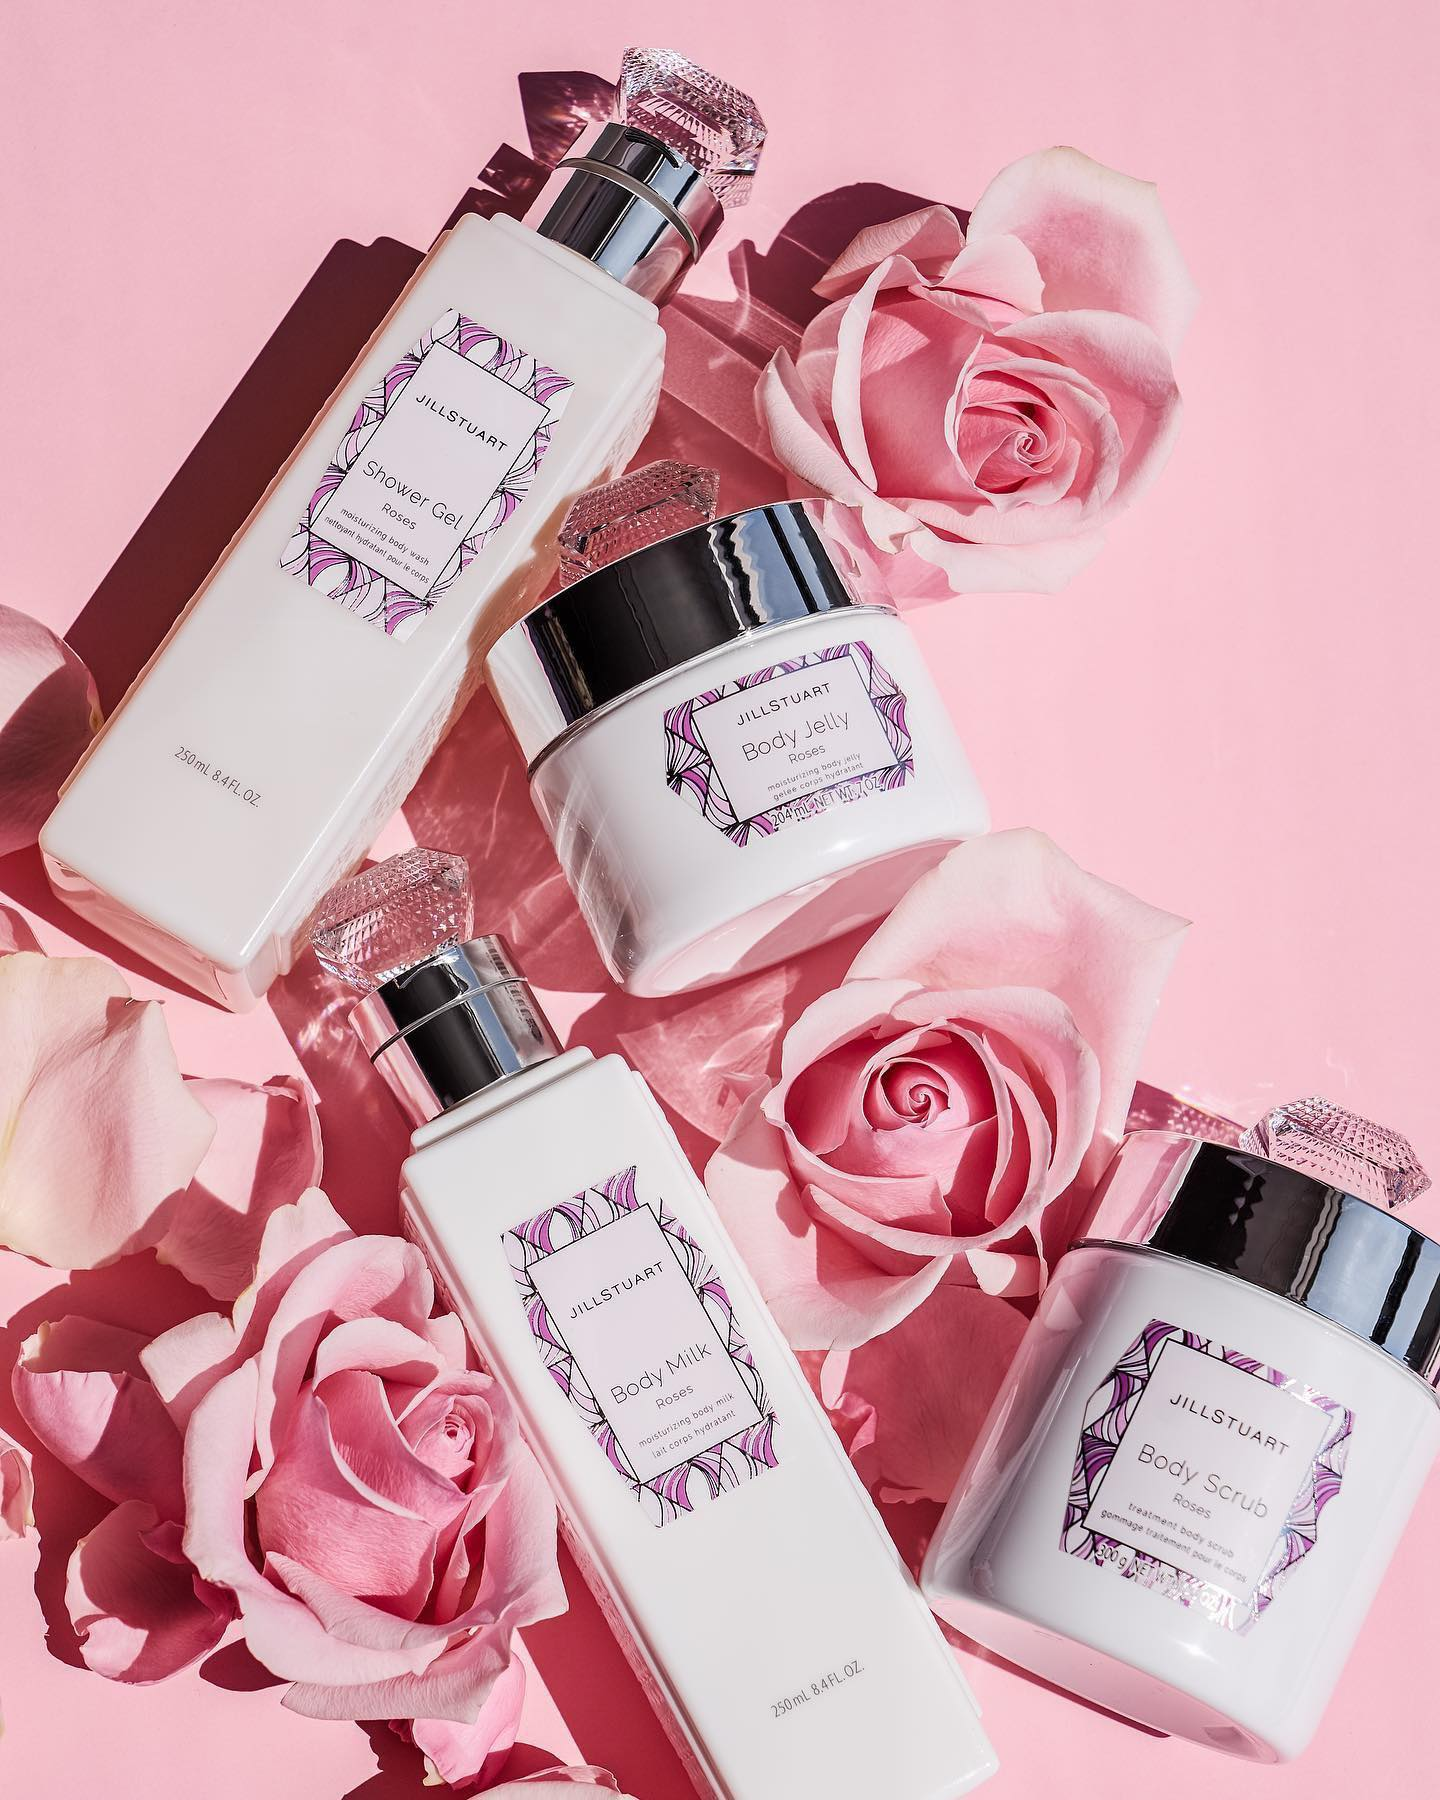 jill stuart beauty rose scented bath and body collection